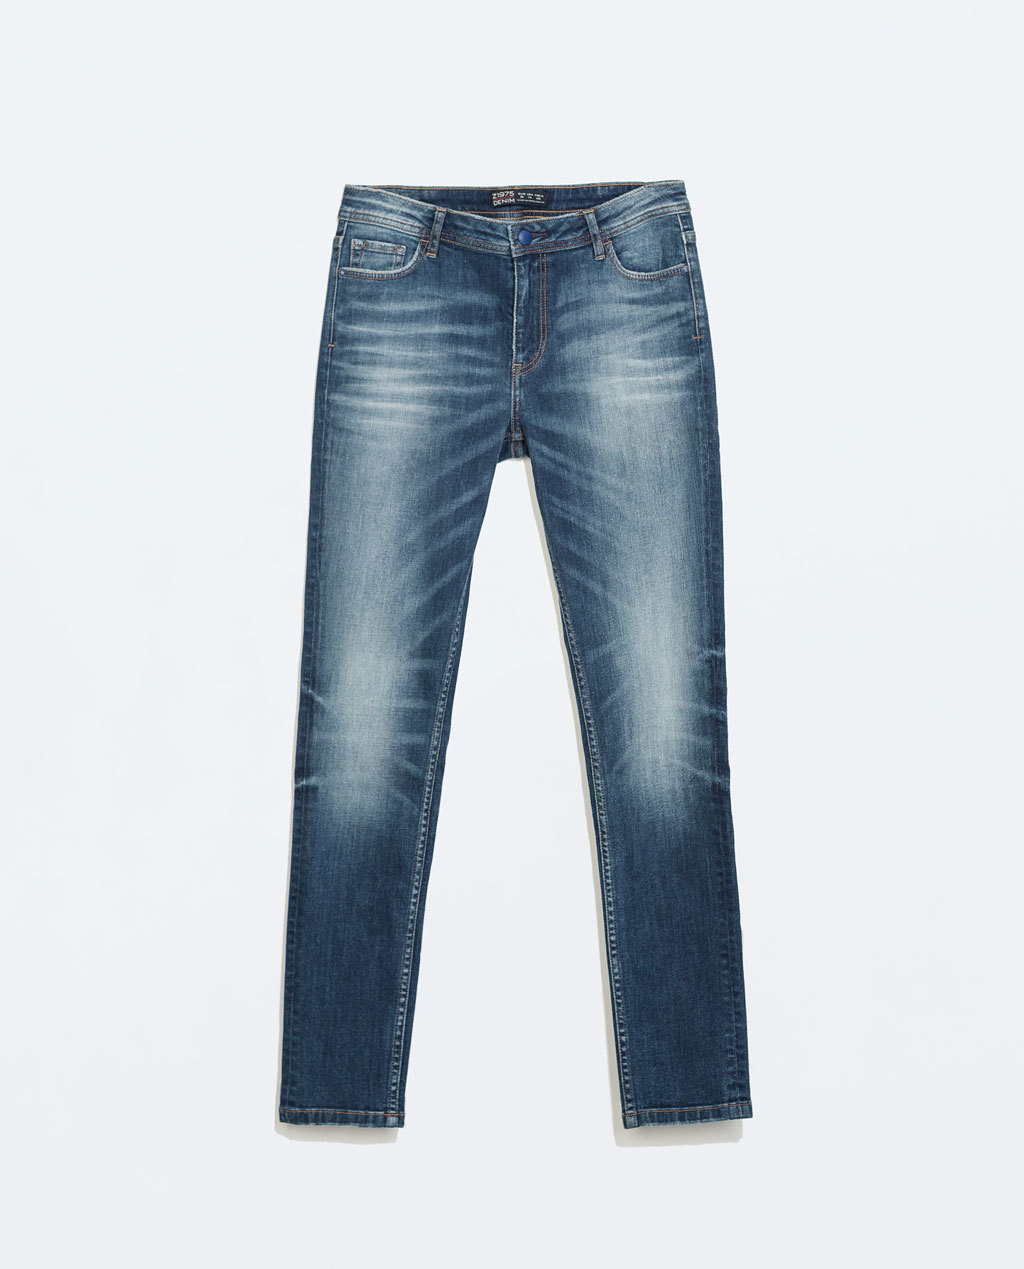 Mid Rise Cigarette Jeans - style: straight leg; length: standard; pattern: plain; pocket detail: traditional 5 pocket; waist: mid/regular rise; predominant colour: denim; occasions: casual; fibres: cotton - stretch; jeans detail: shading down centre of thigh; texture group: denim; pattern type: fabric; season: a/w 2014; wardrobe: basic